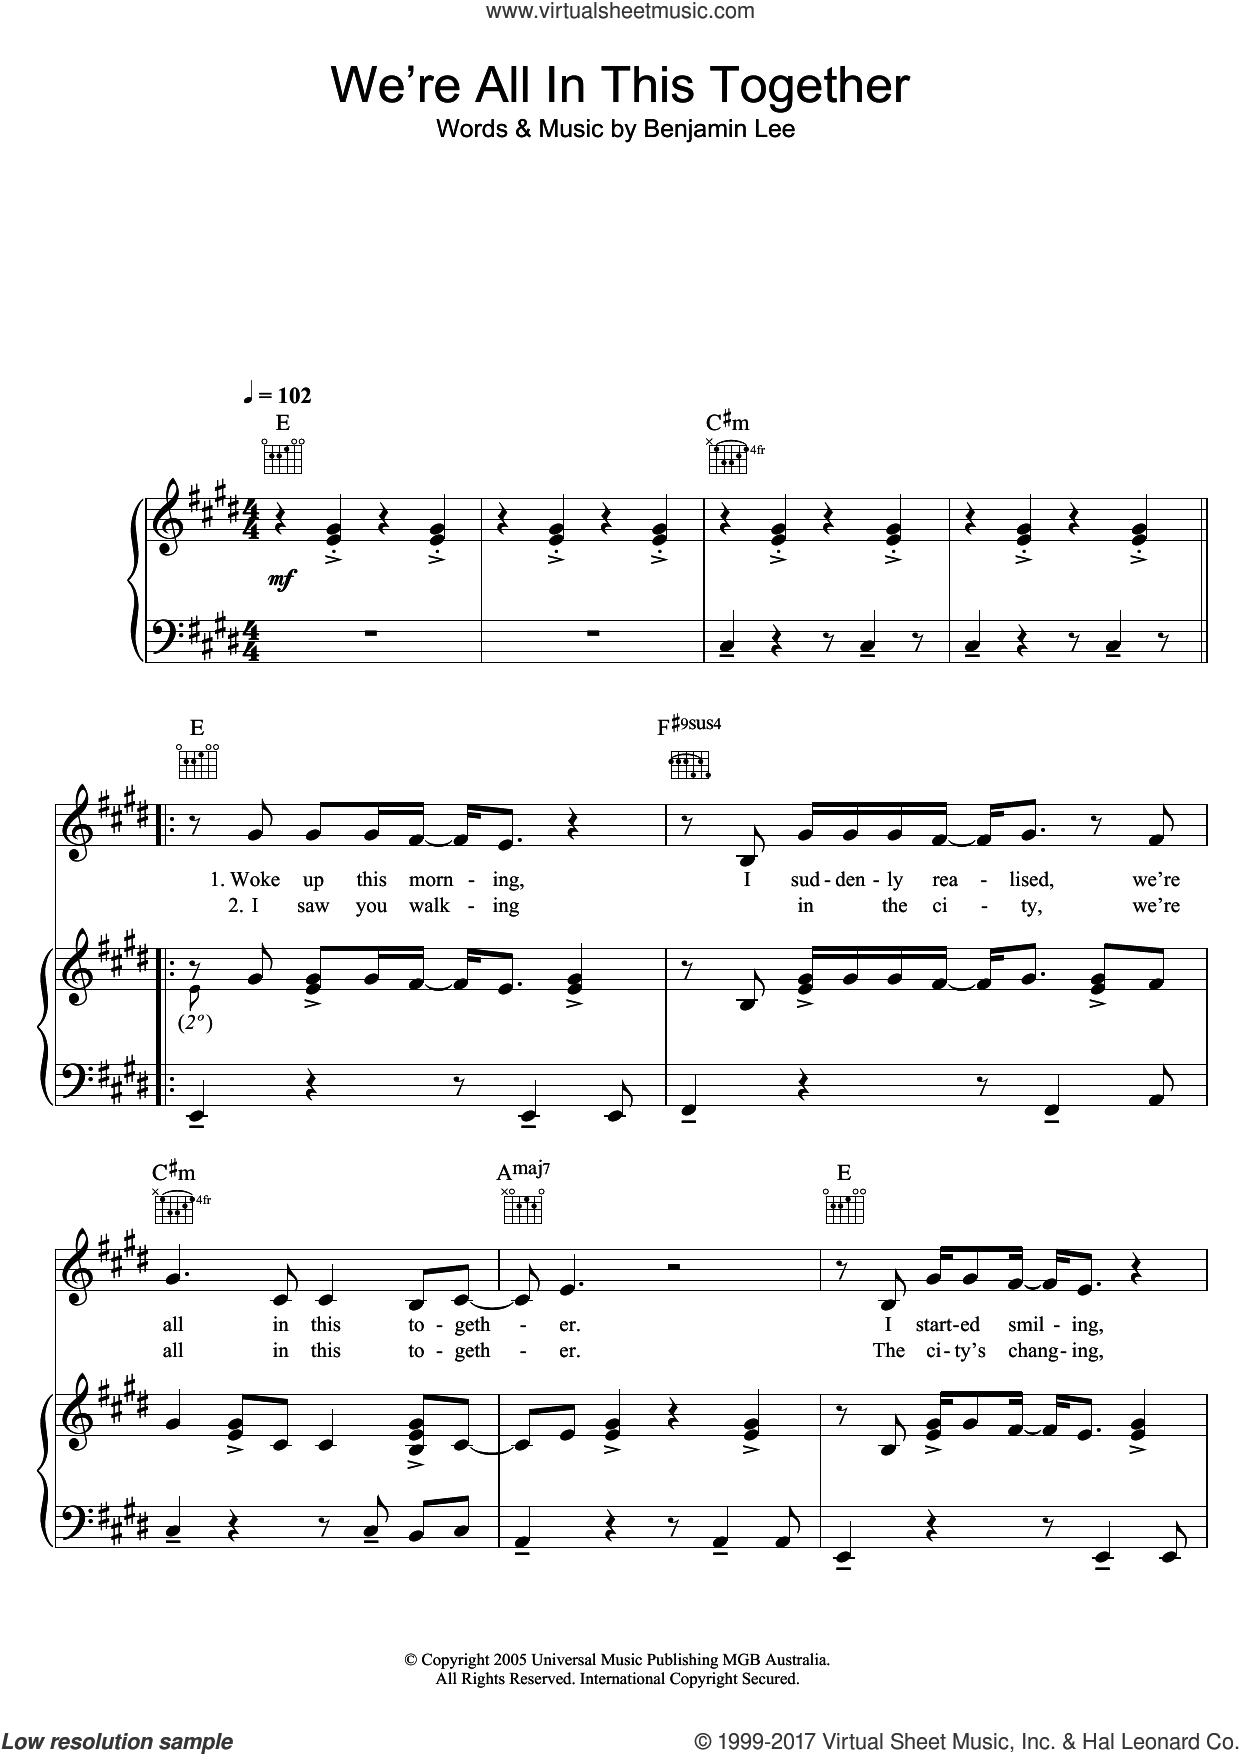 We're All In This Together sheet music for voice, piano or guitar by Ben Lee and Benjamin Lee, intermediate